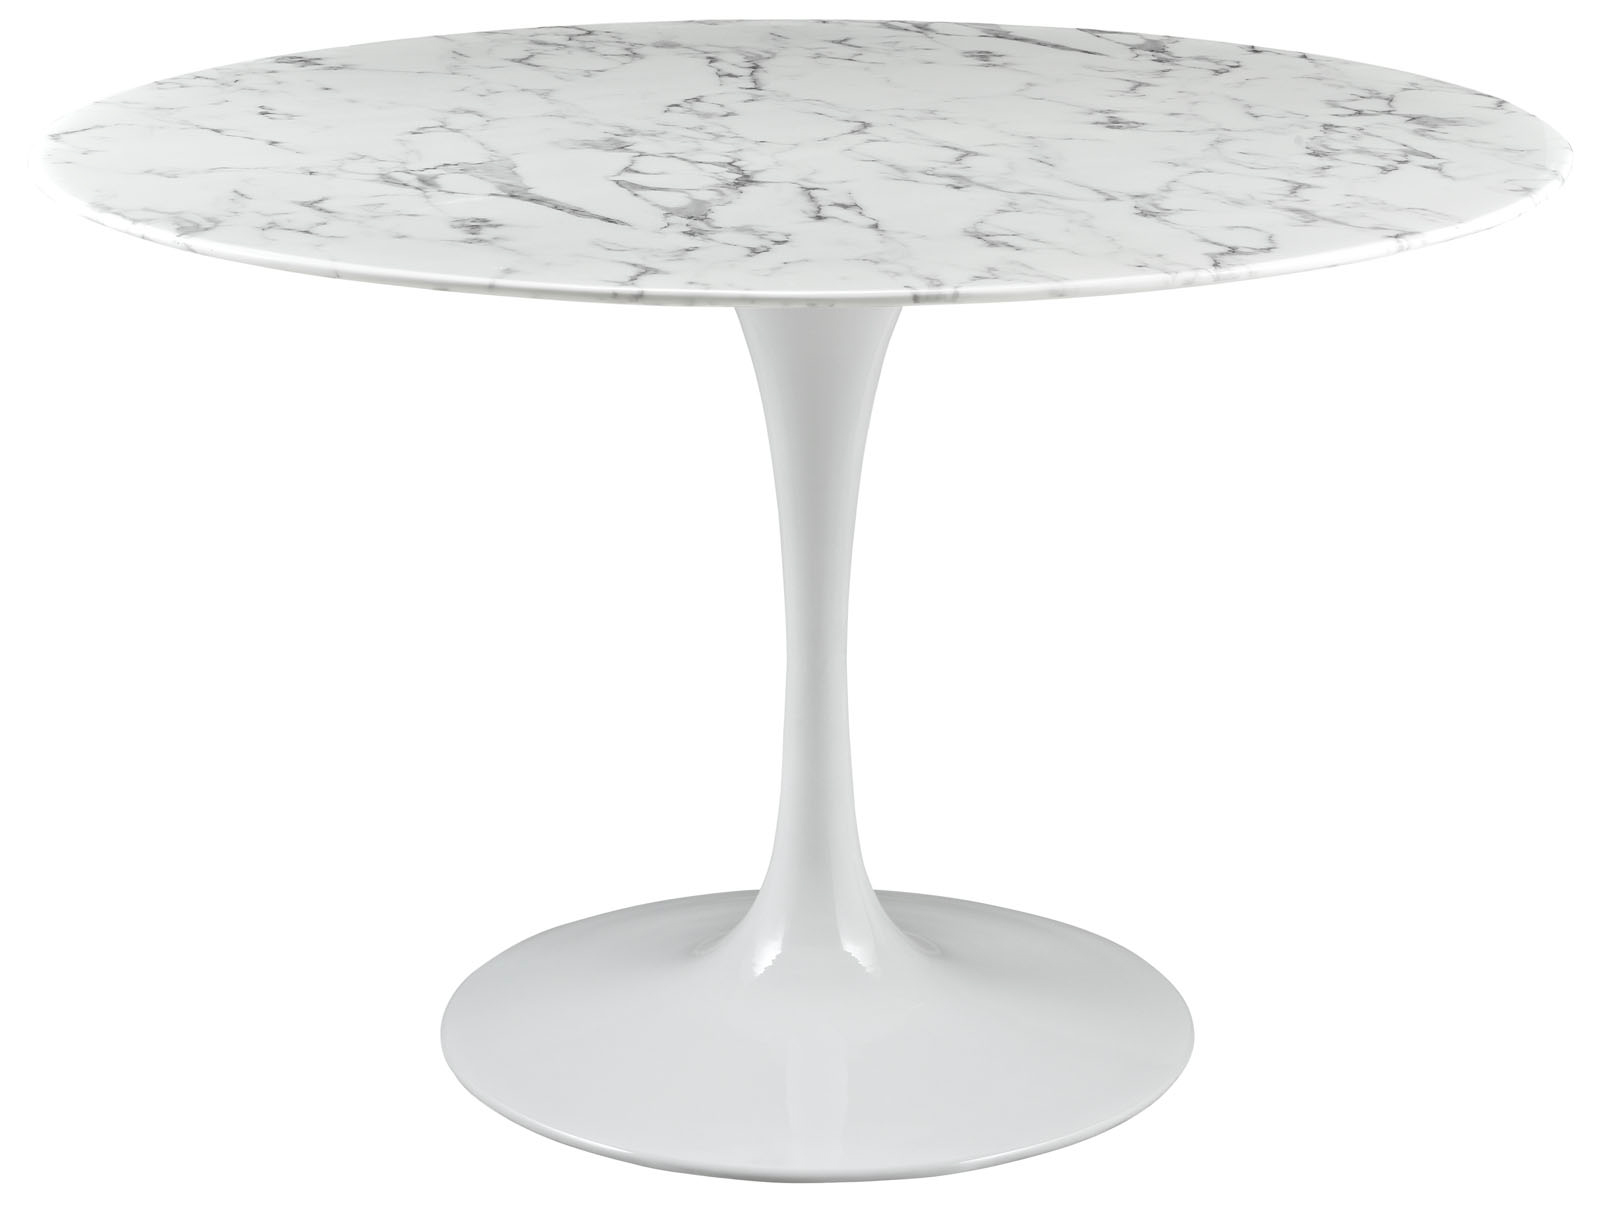 Modern Dining Table Collection | City Living Design